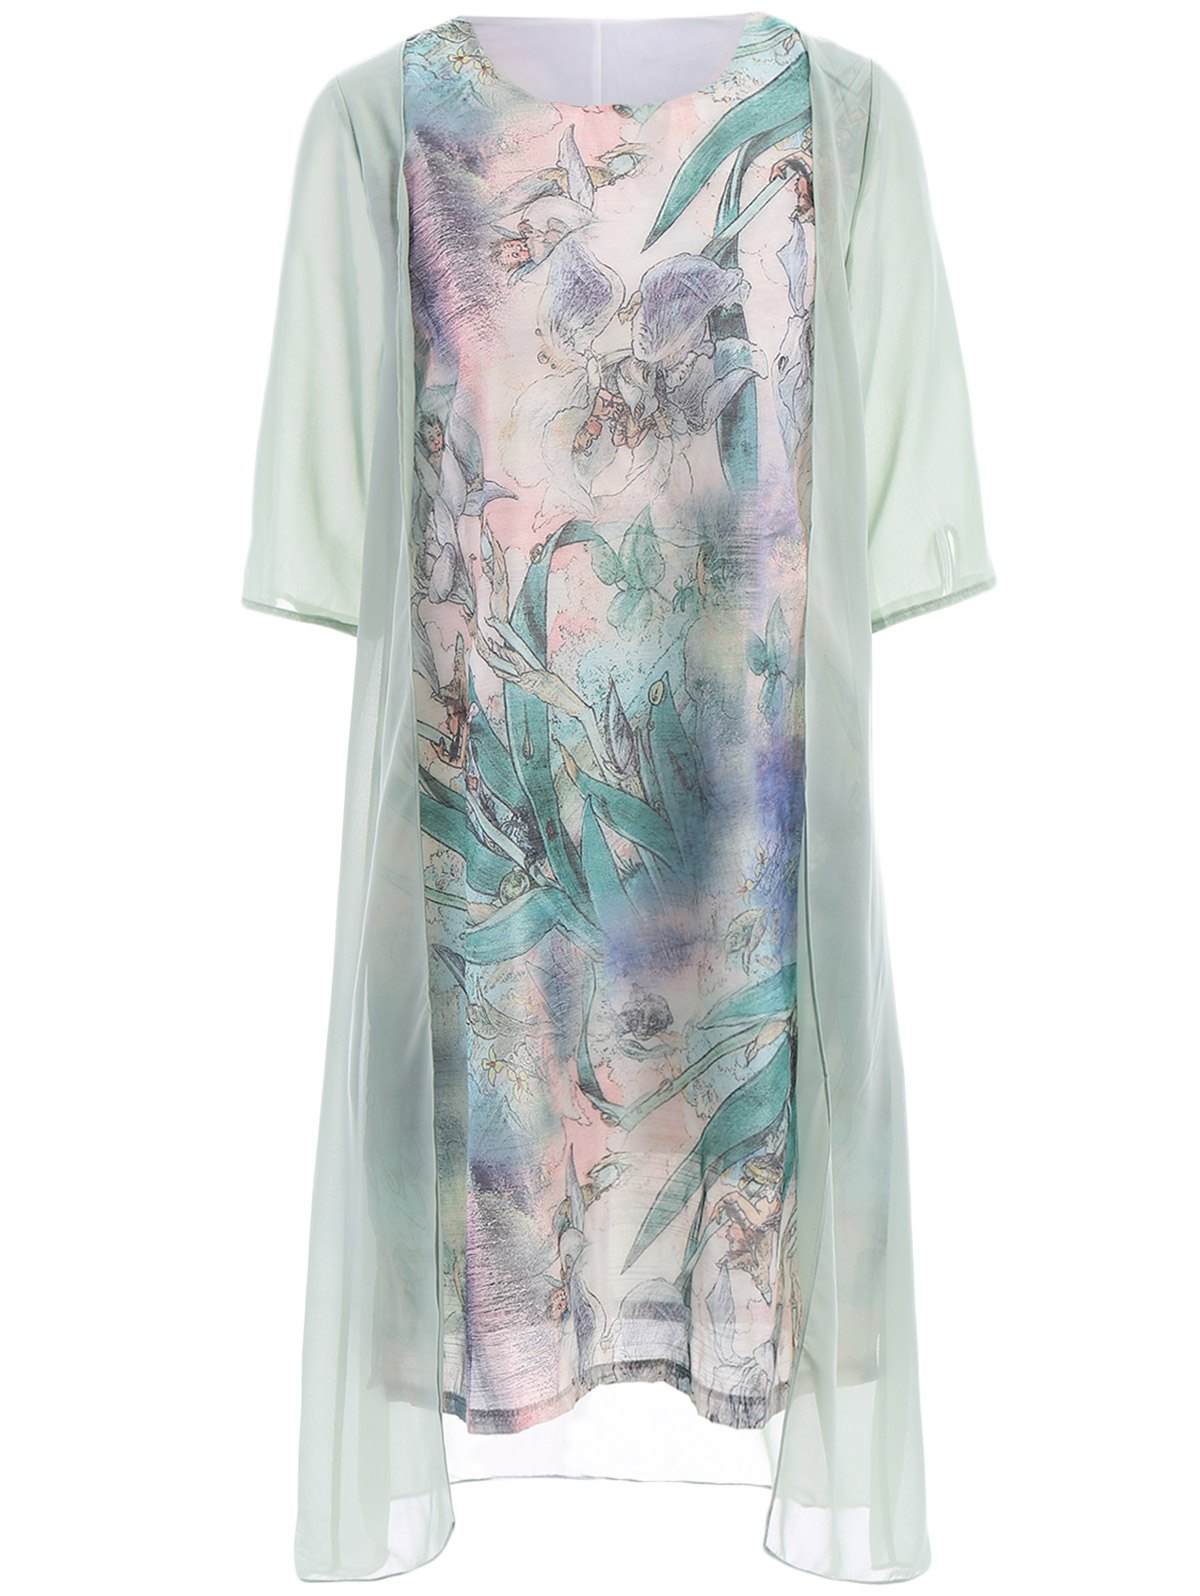 Ladylike Scoop Neck 3/4 Sleeve Floral Print Faux Twinset See-Through Women's Dress - LIGHT GREEN S